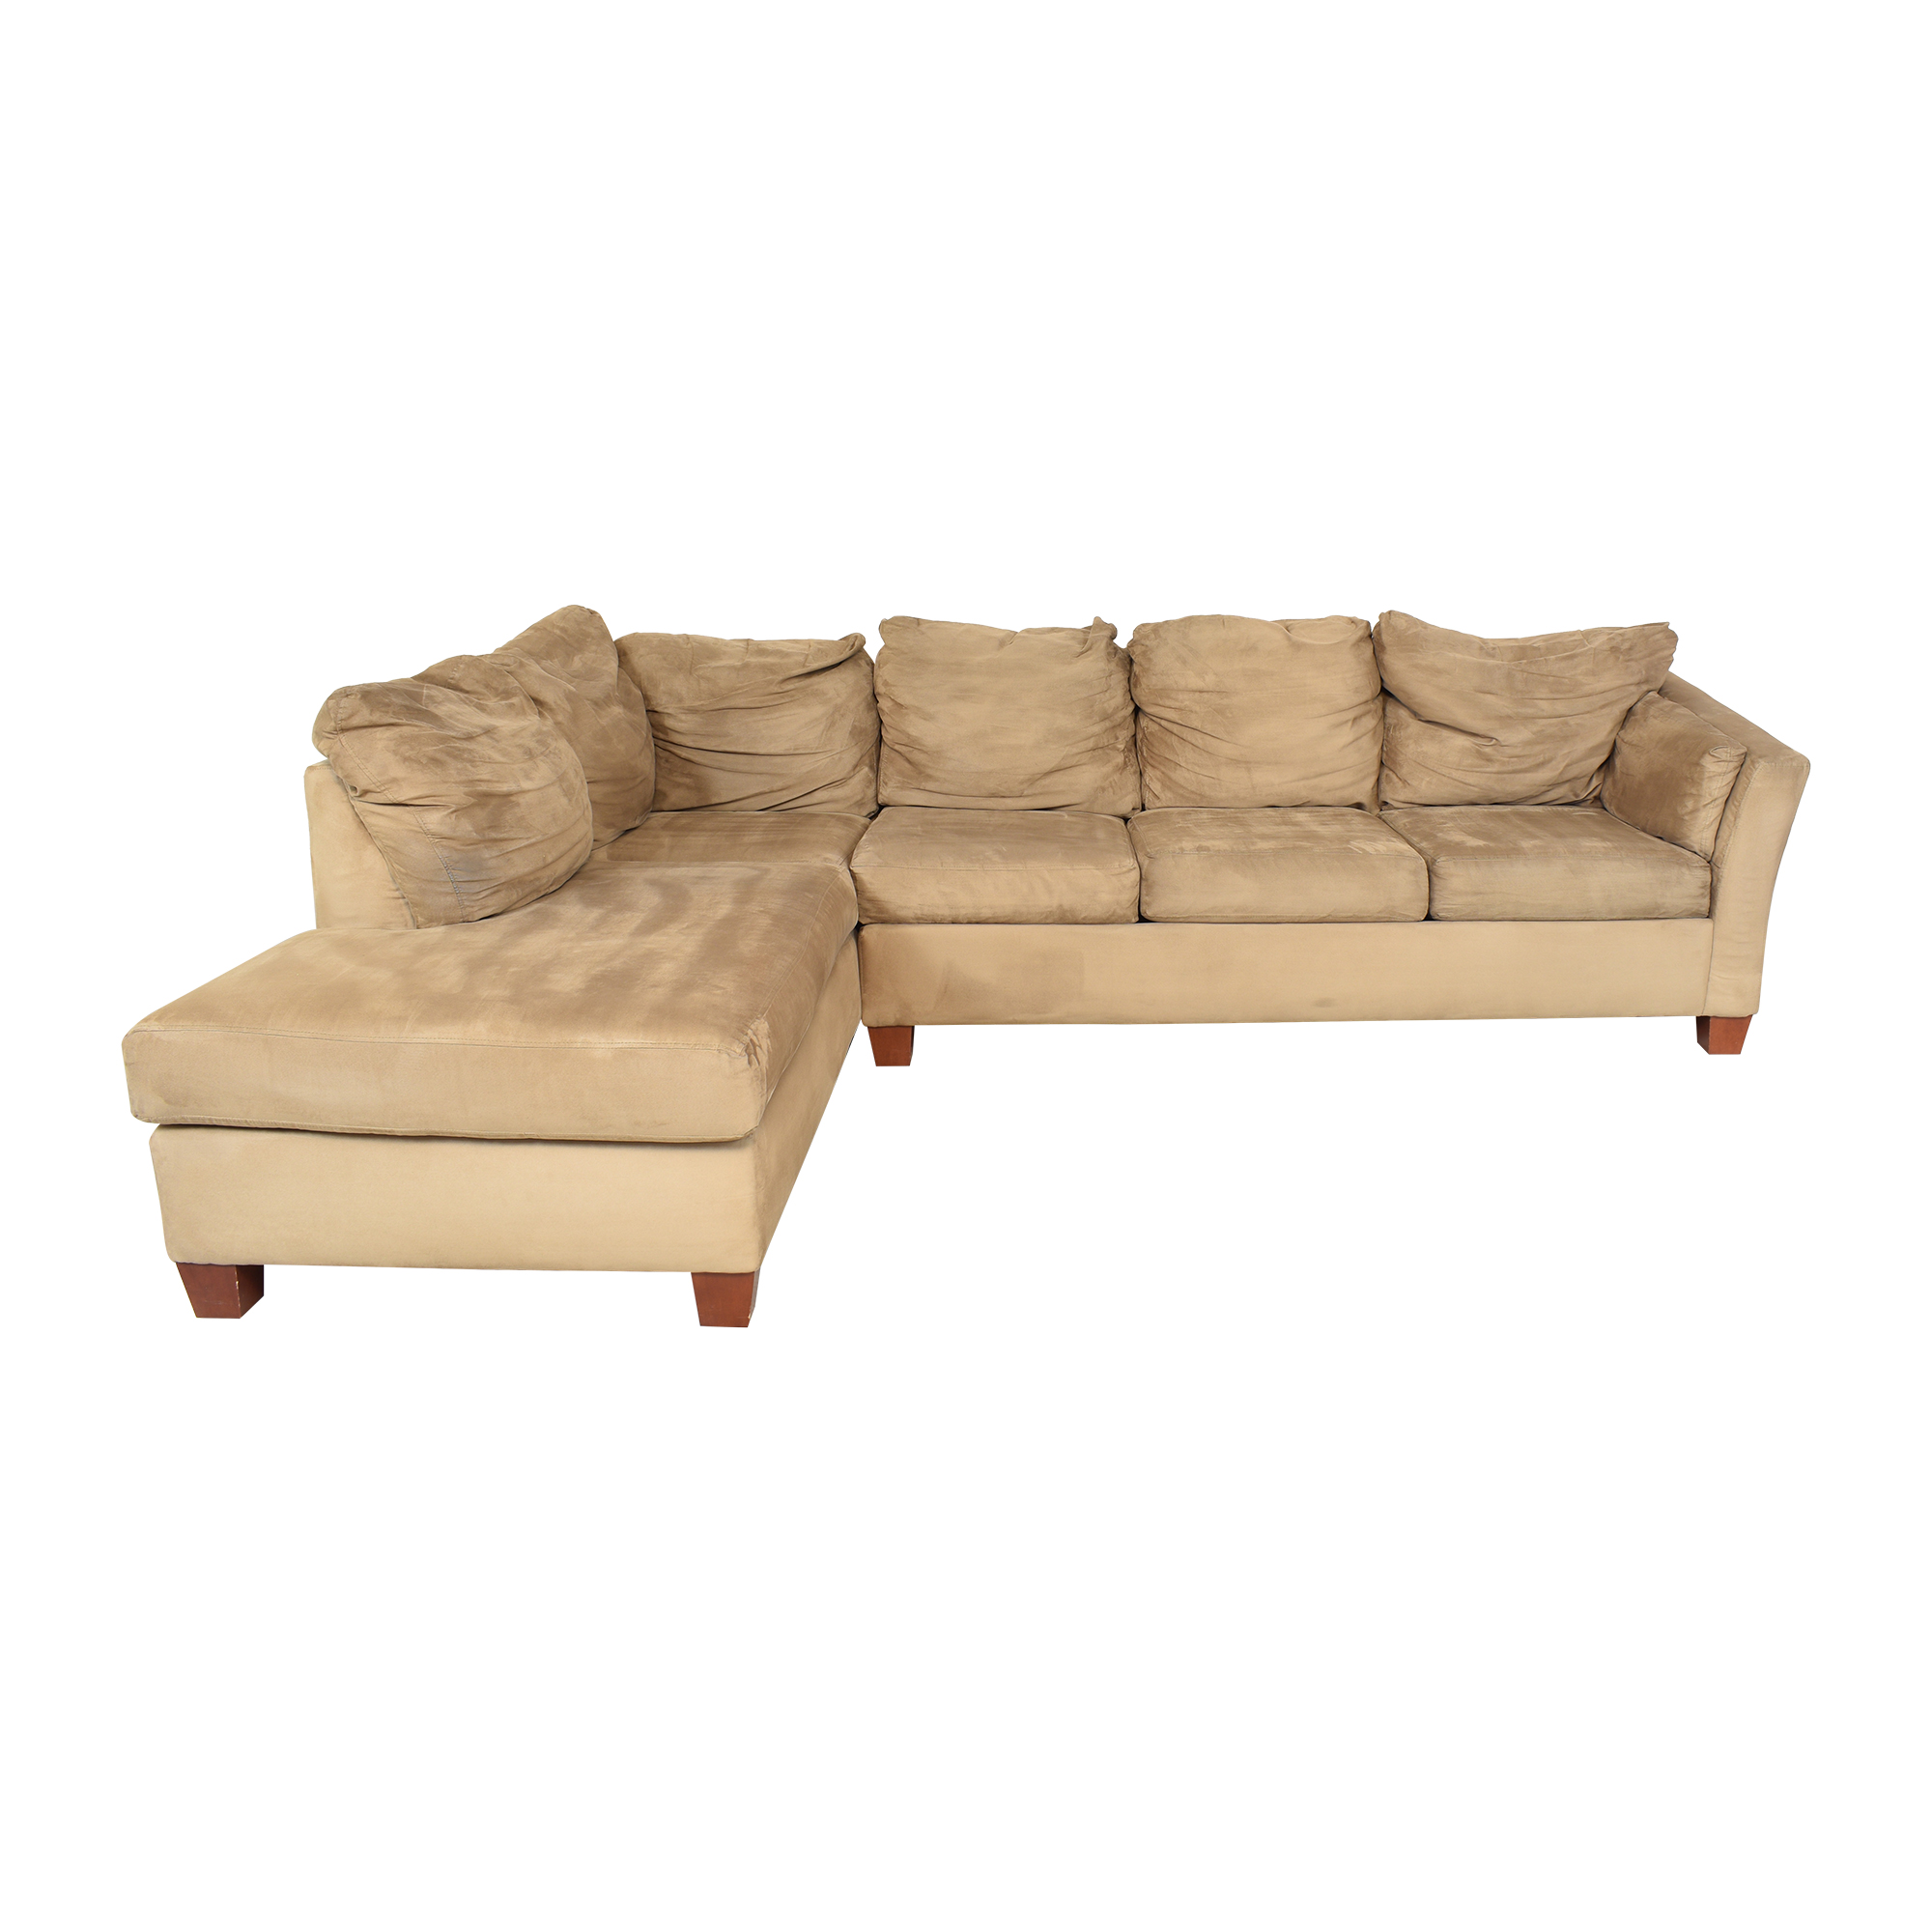 Raymour & Flanigan Raymour & Flanigan Chaise Sectional Couch